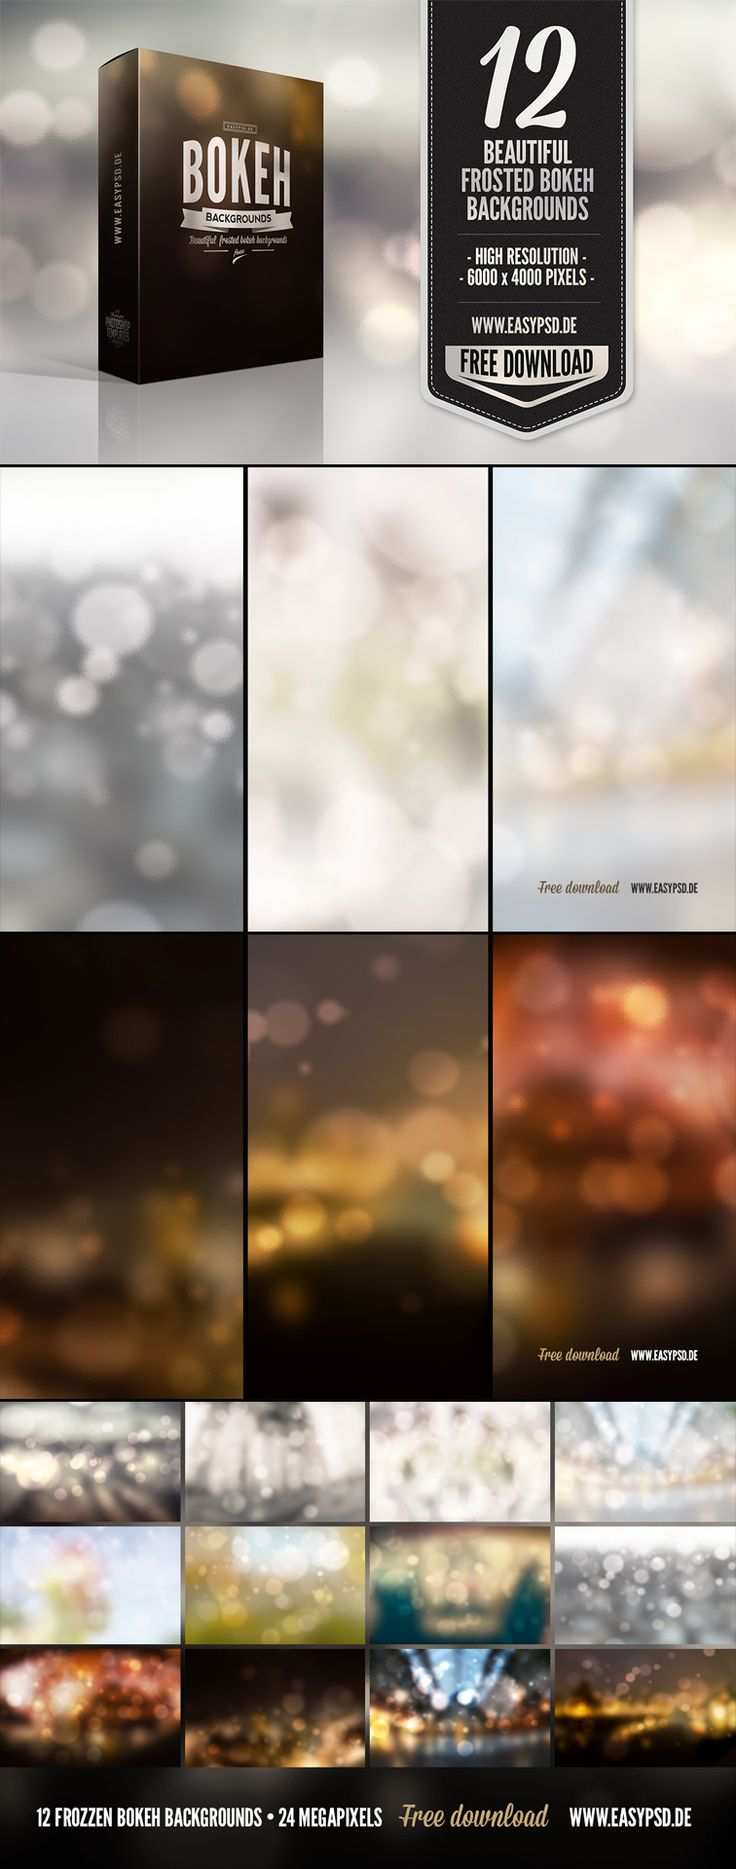 12 Free Bokeh Backgrounds. Don't mind if I do. Love bokeh effects